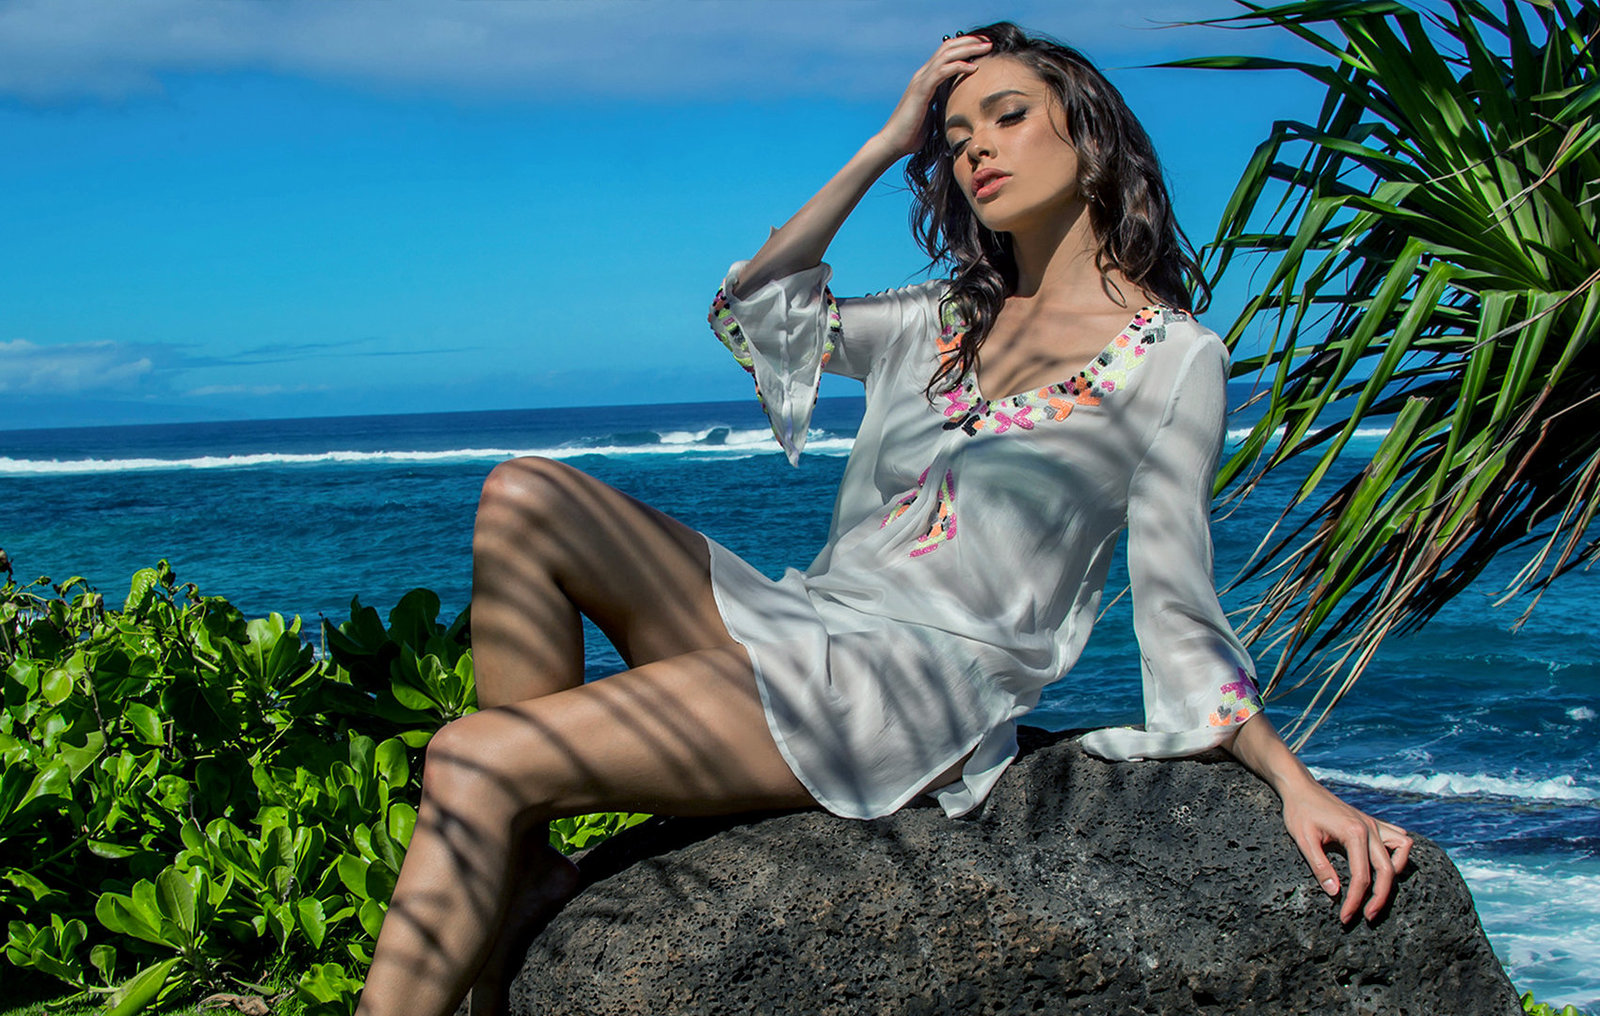 Oahu photographers | Honolulu  photographers |  Waikiki photographers